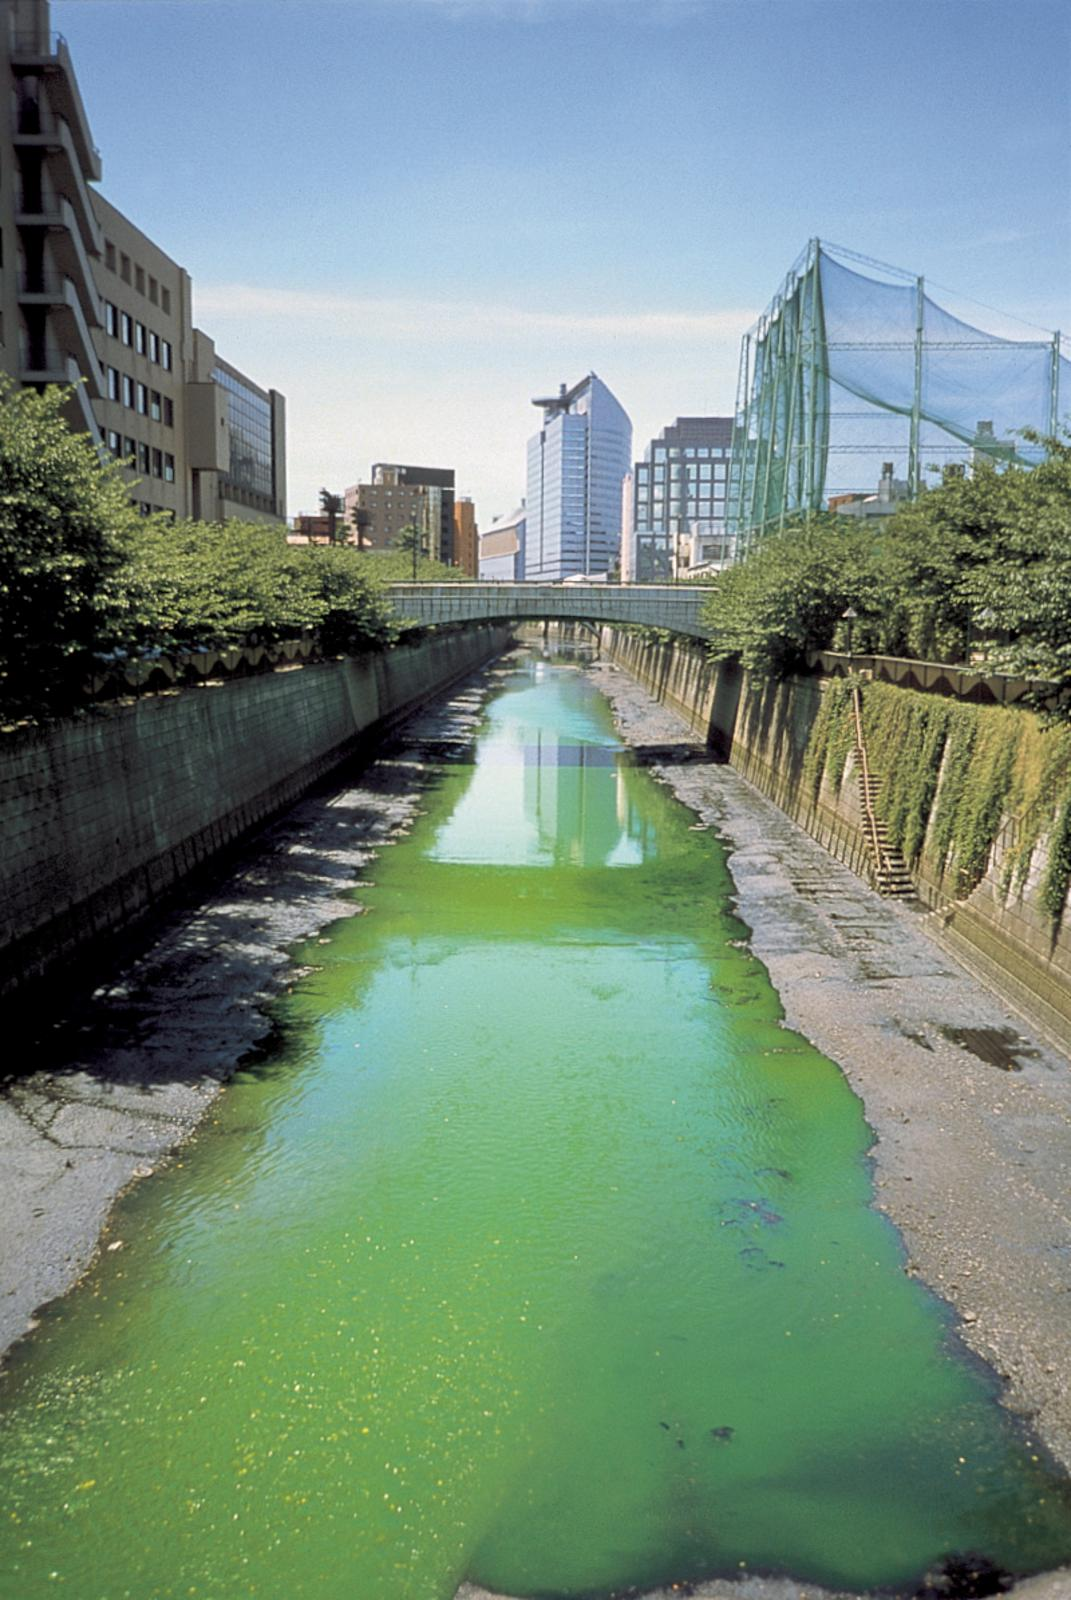 Green river • Artwork • Studio Olafur Eliasson